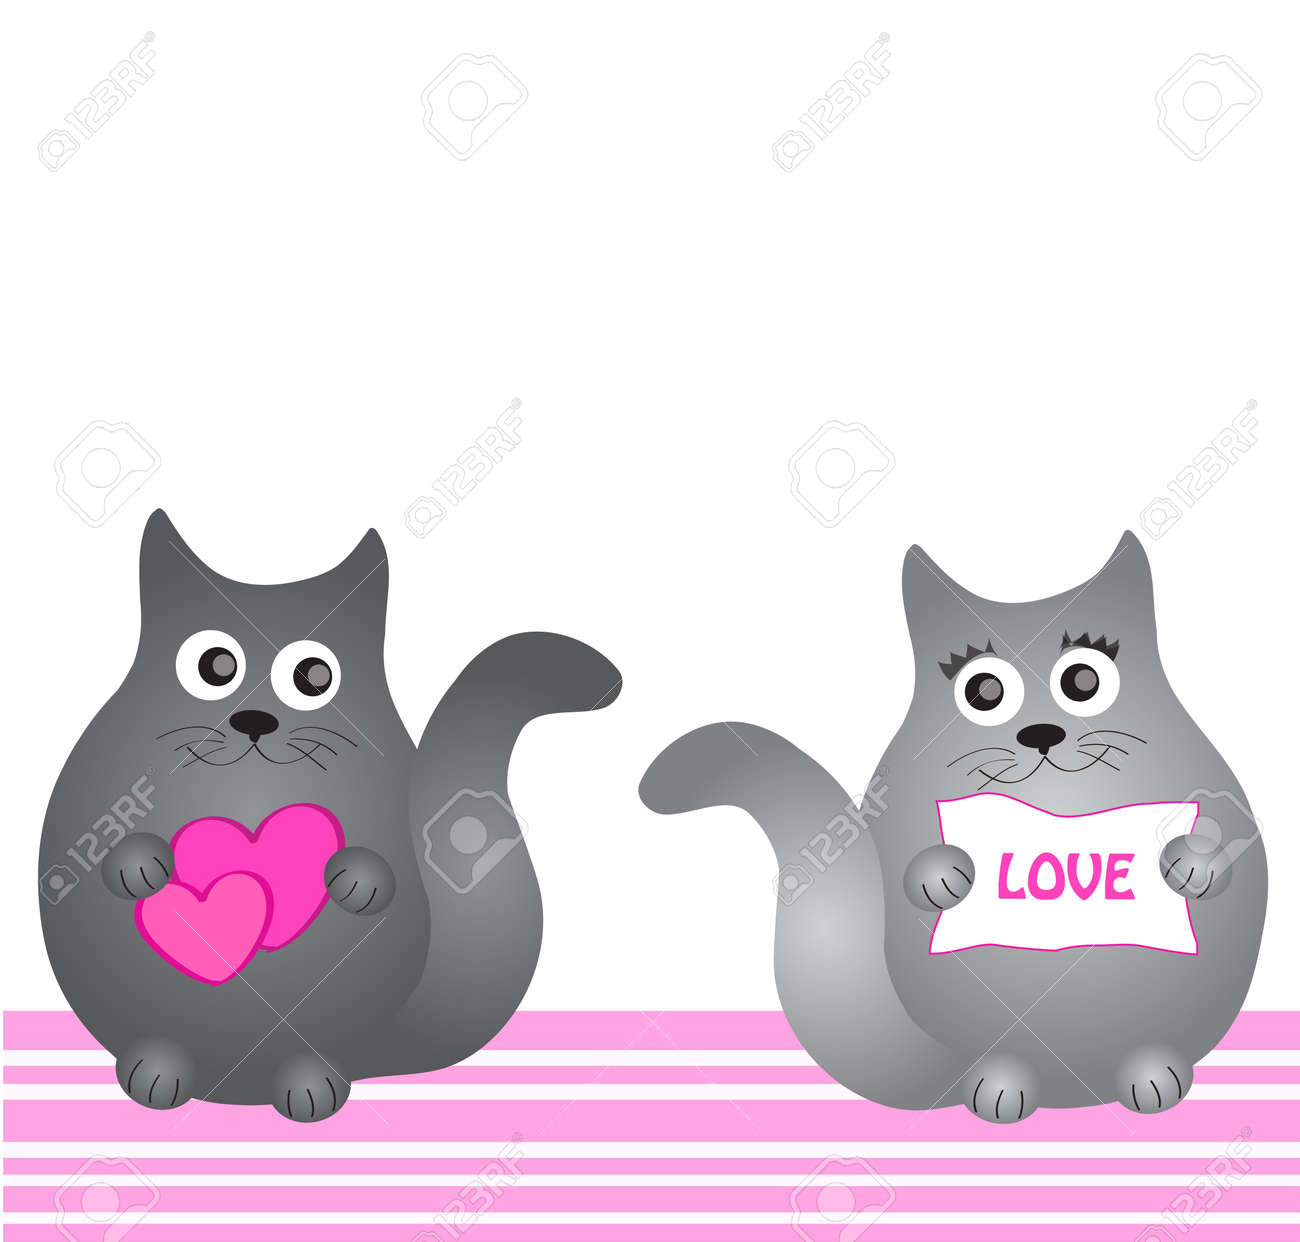 dreaming cat Stock Vector - 14394119